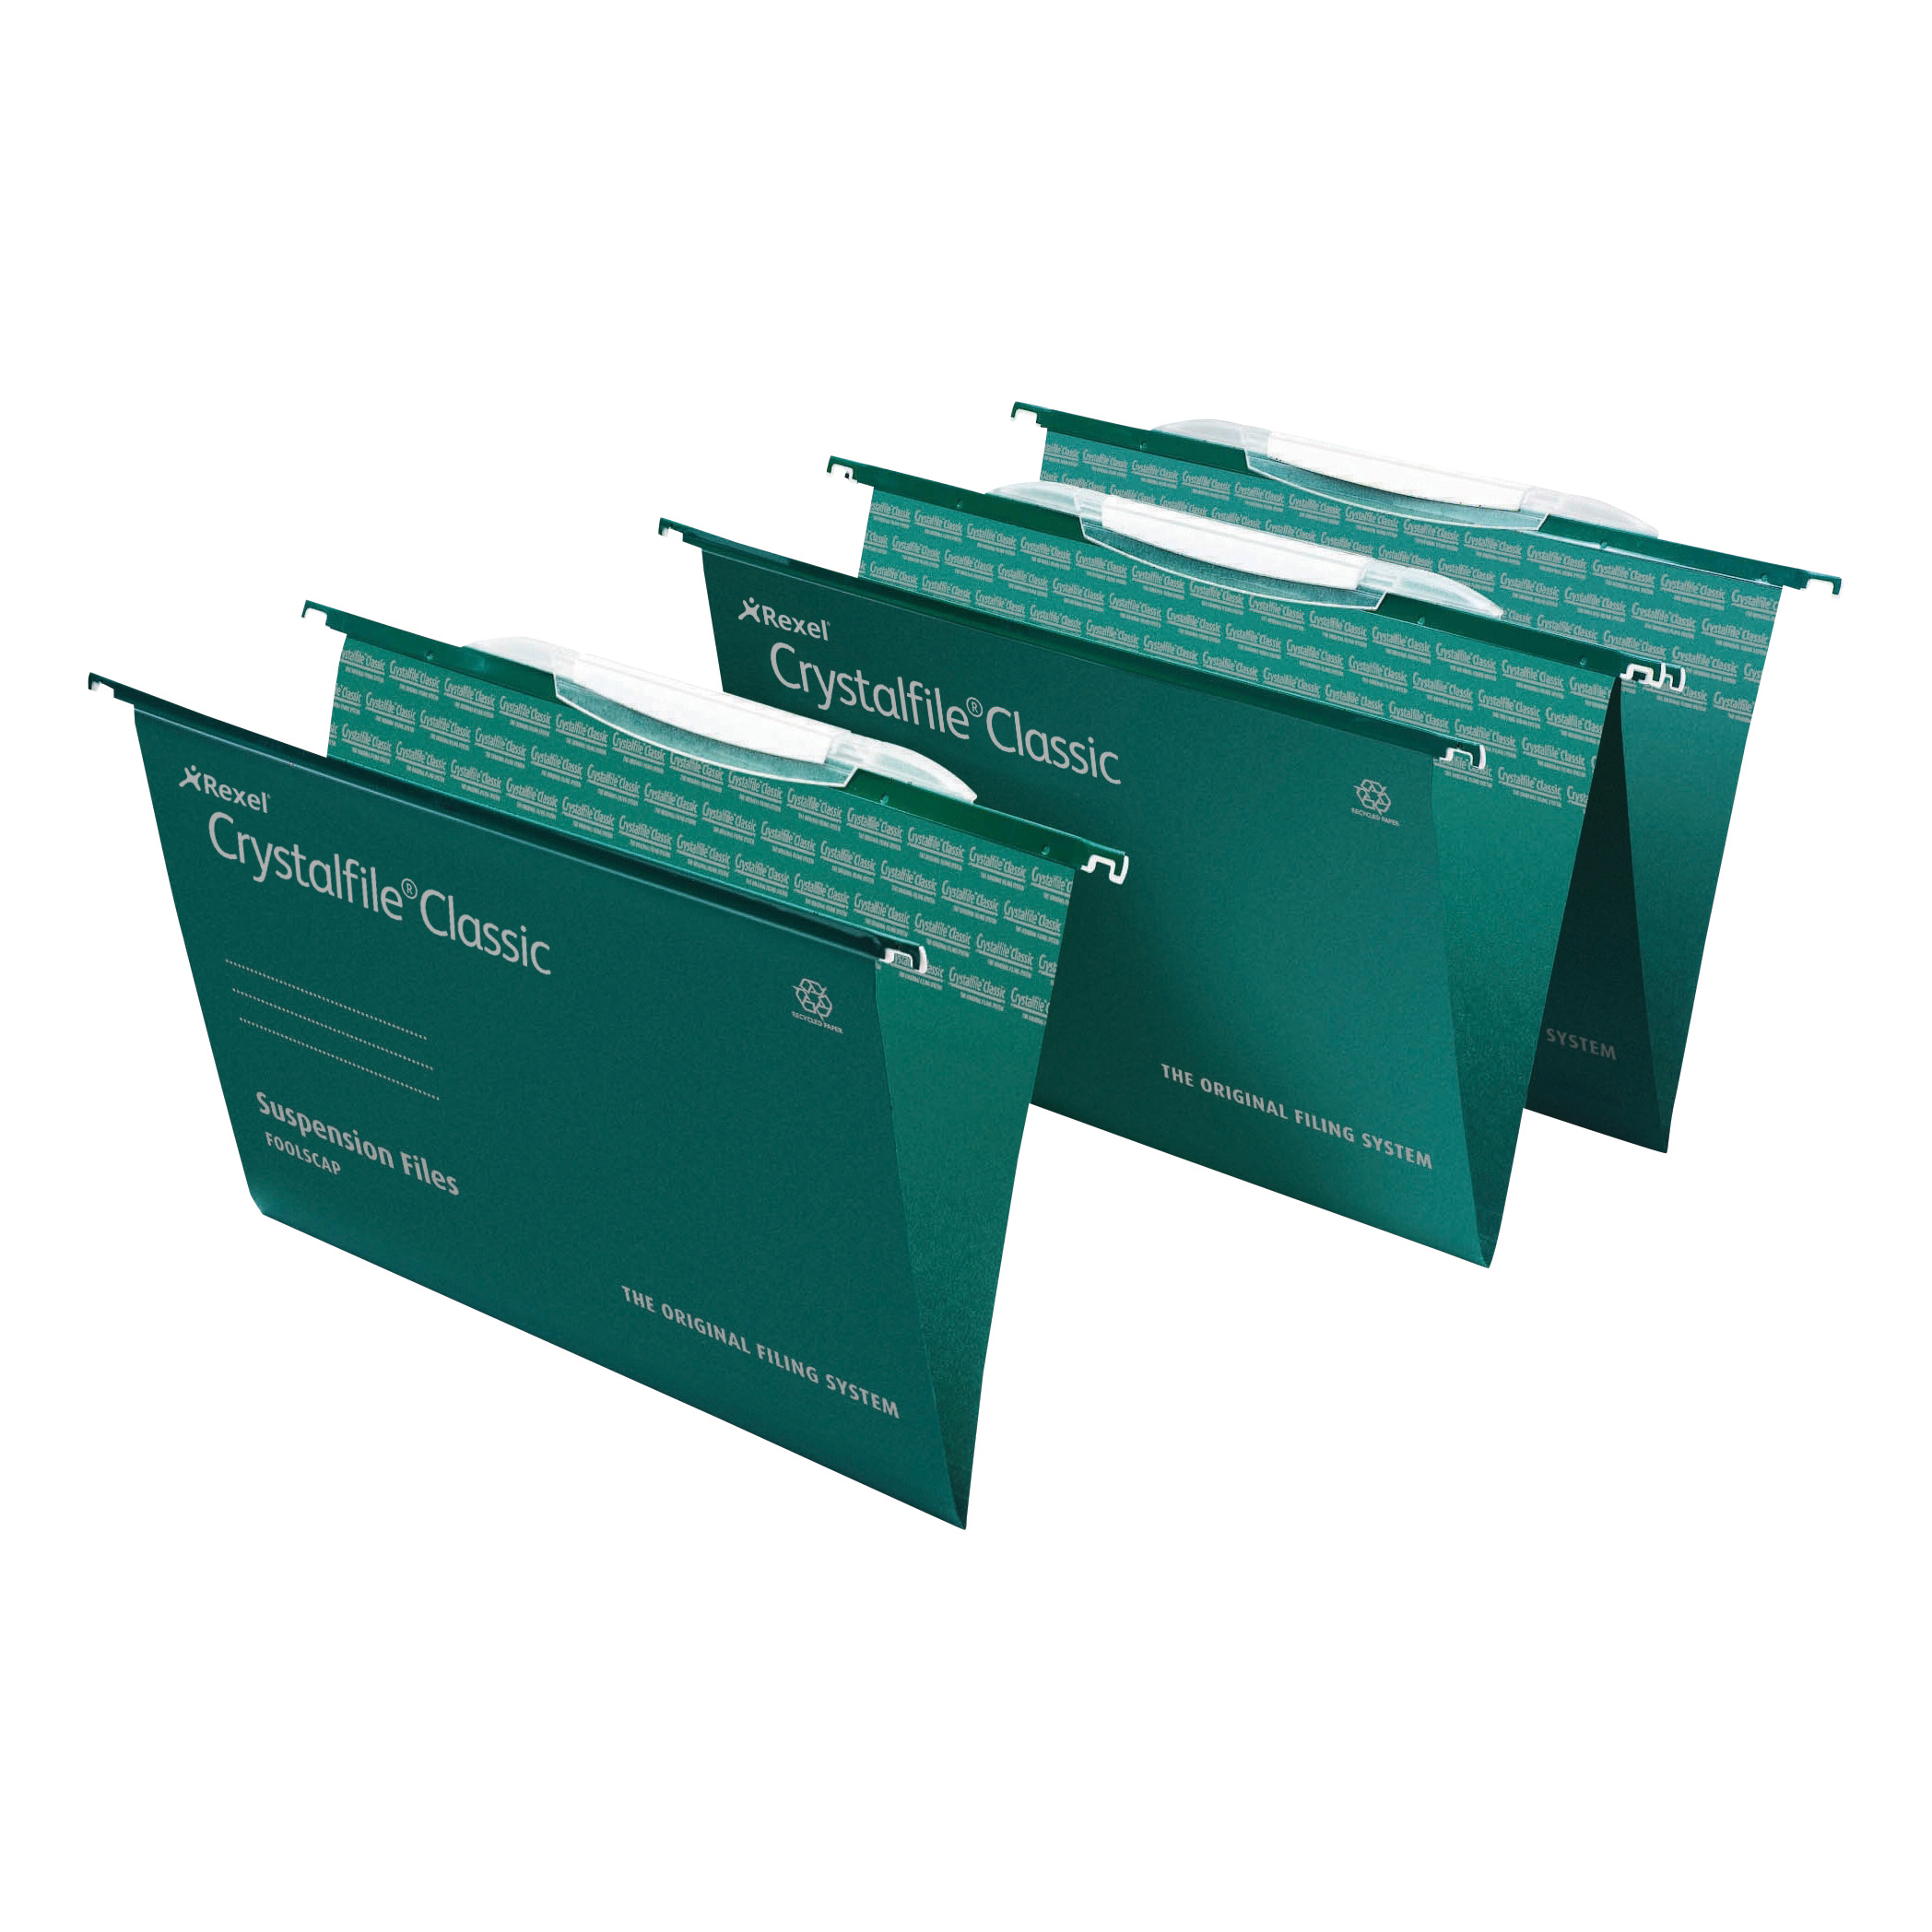 Suspension File Rexel Crystalfile Classic Linking Suspension File 15mm V-base 230gsm Foolscap Green Ref 3000030 Pack 50